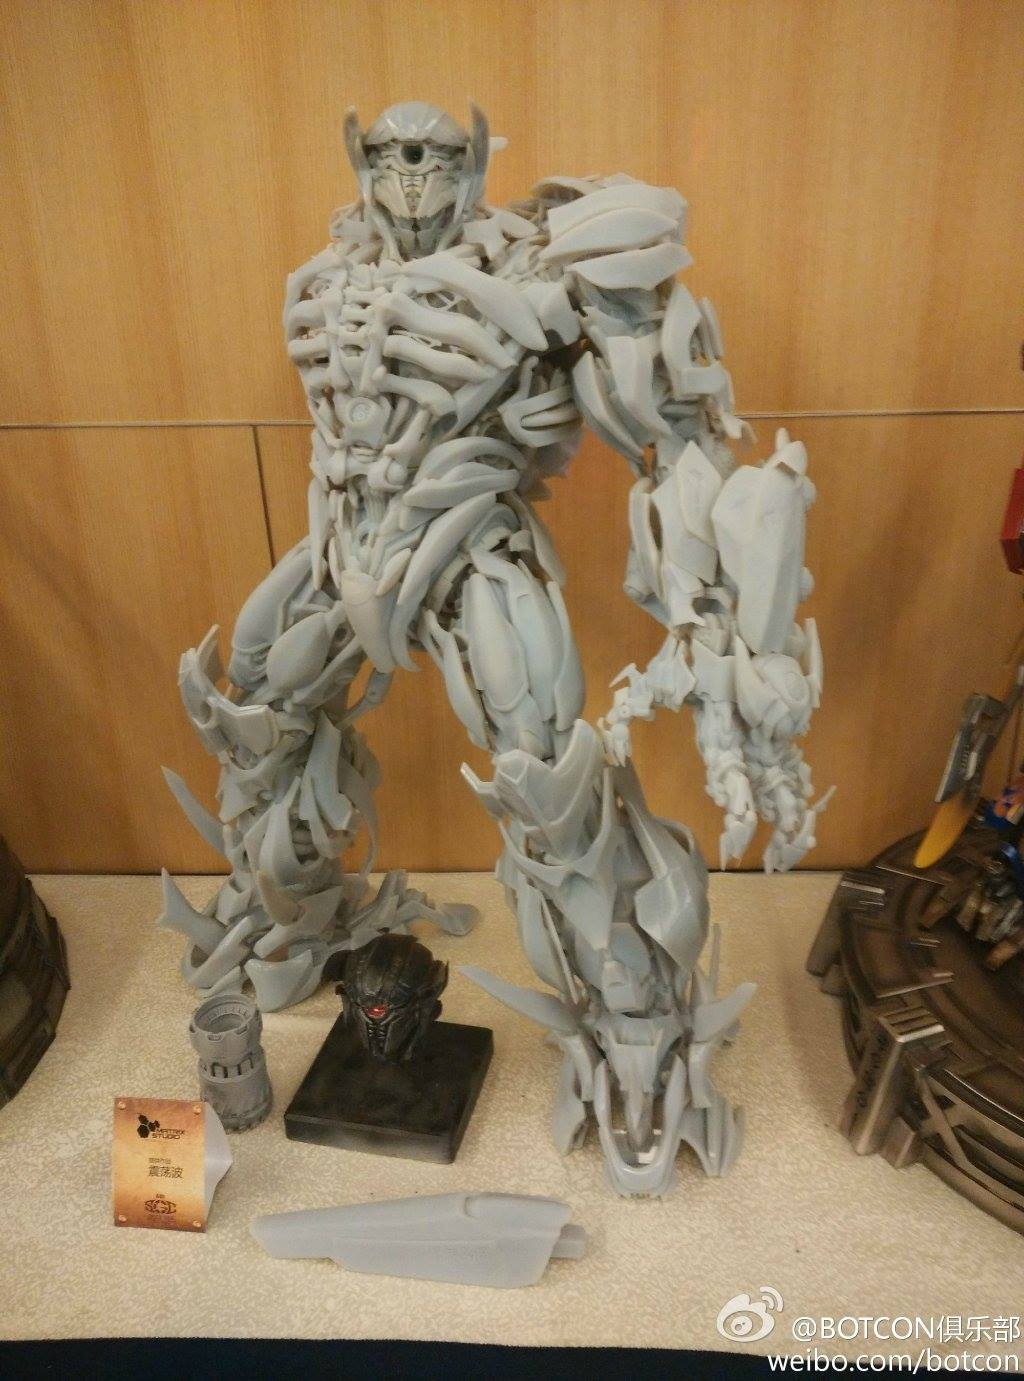 Statues des Films Transformers (articulé, non transformable) ― Par Prime1Studio, M3 Studio, Concept Zone, Super Fans Group, Soap Studio, Soldier Story Toys, etc - Page 3 136986108307495767905657537845205063329410071287o